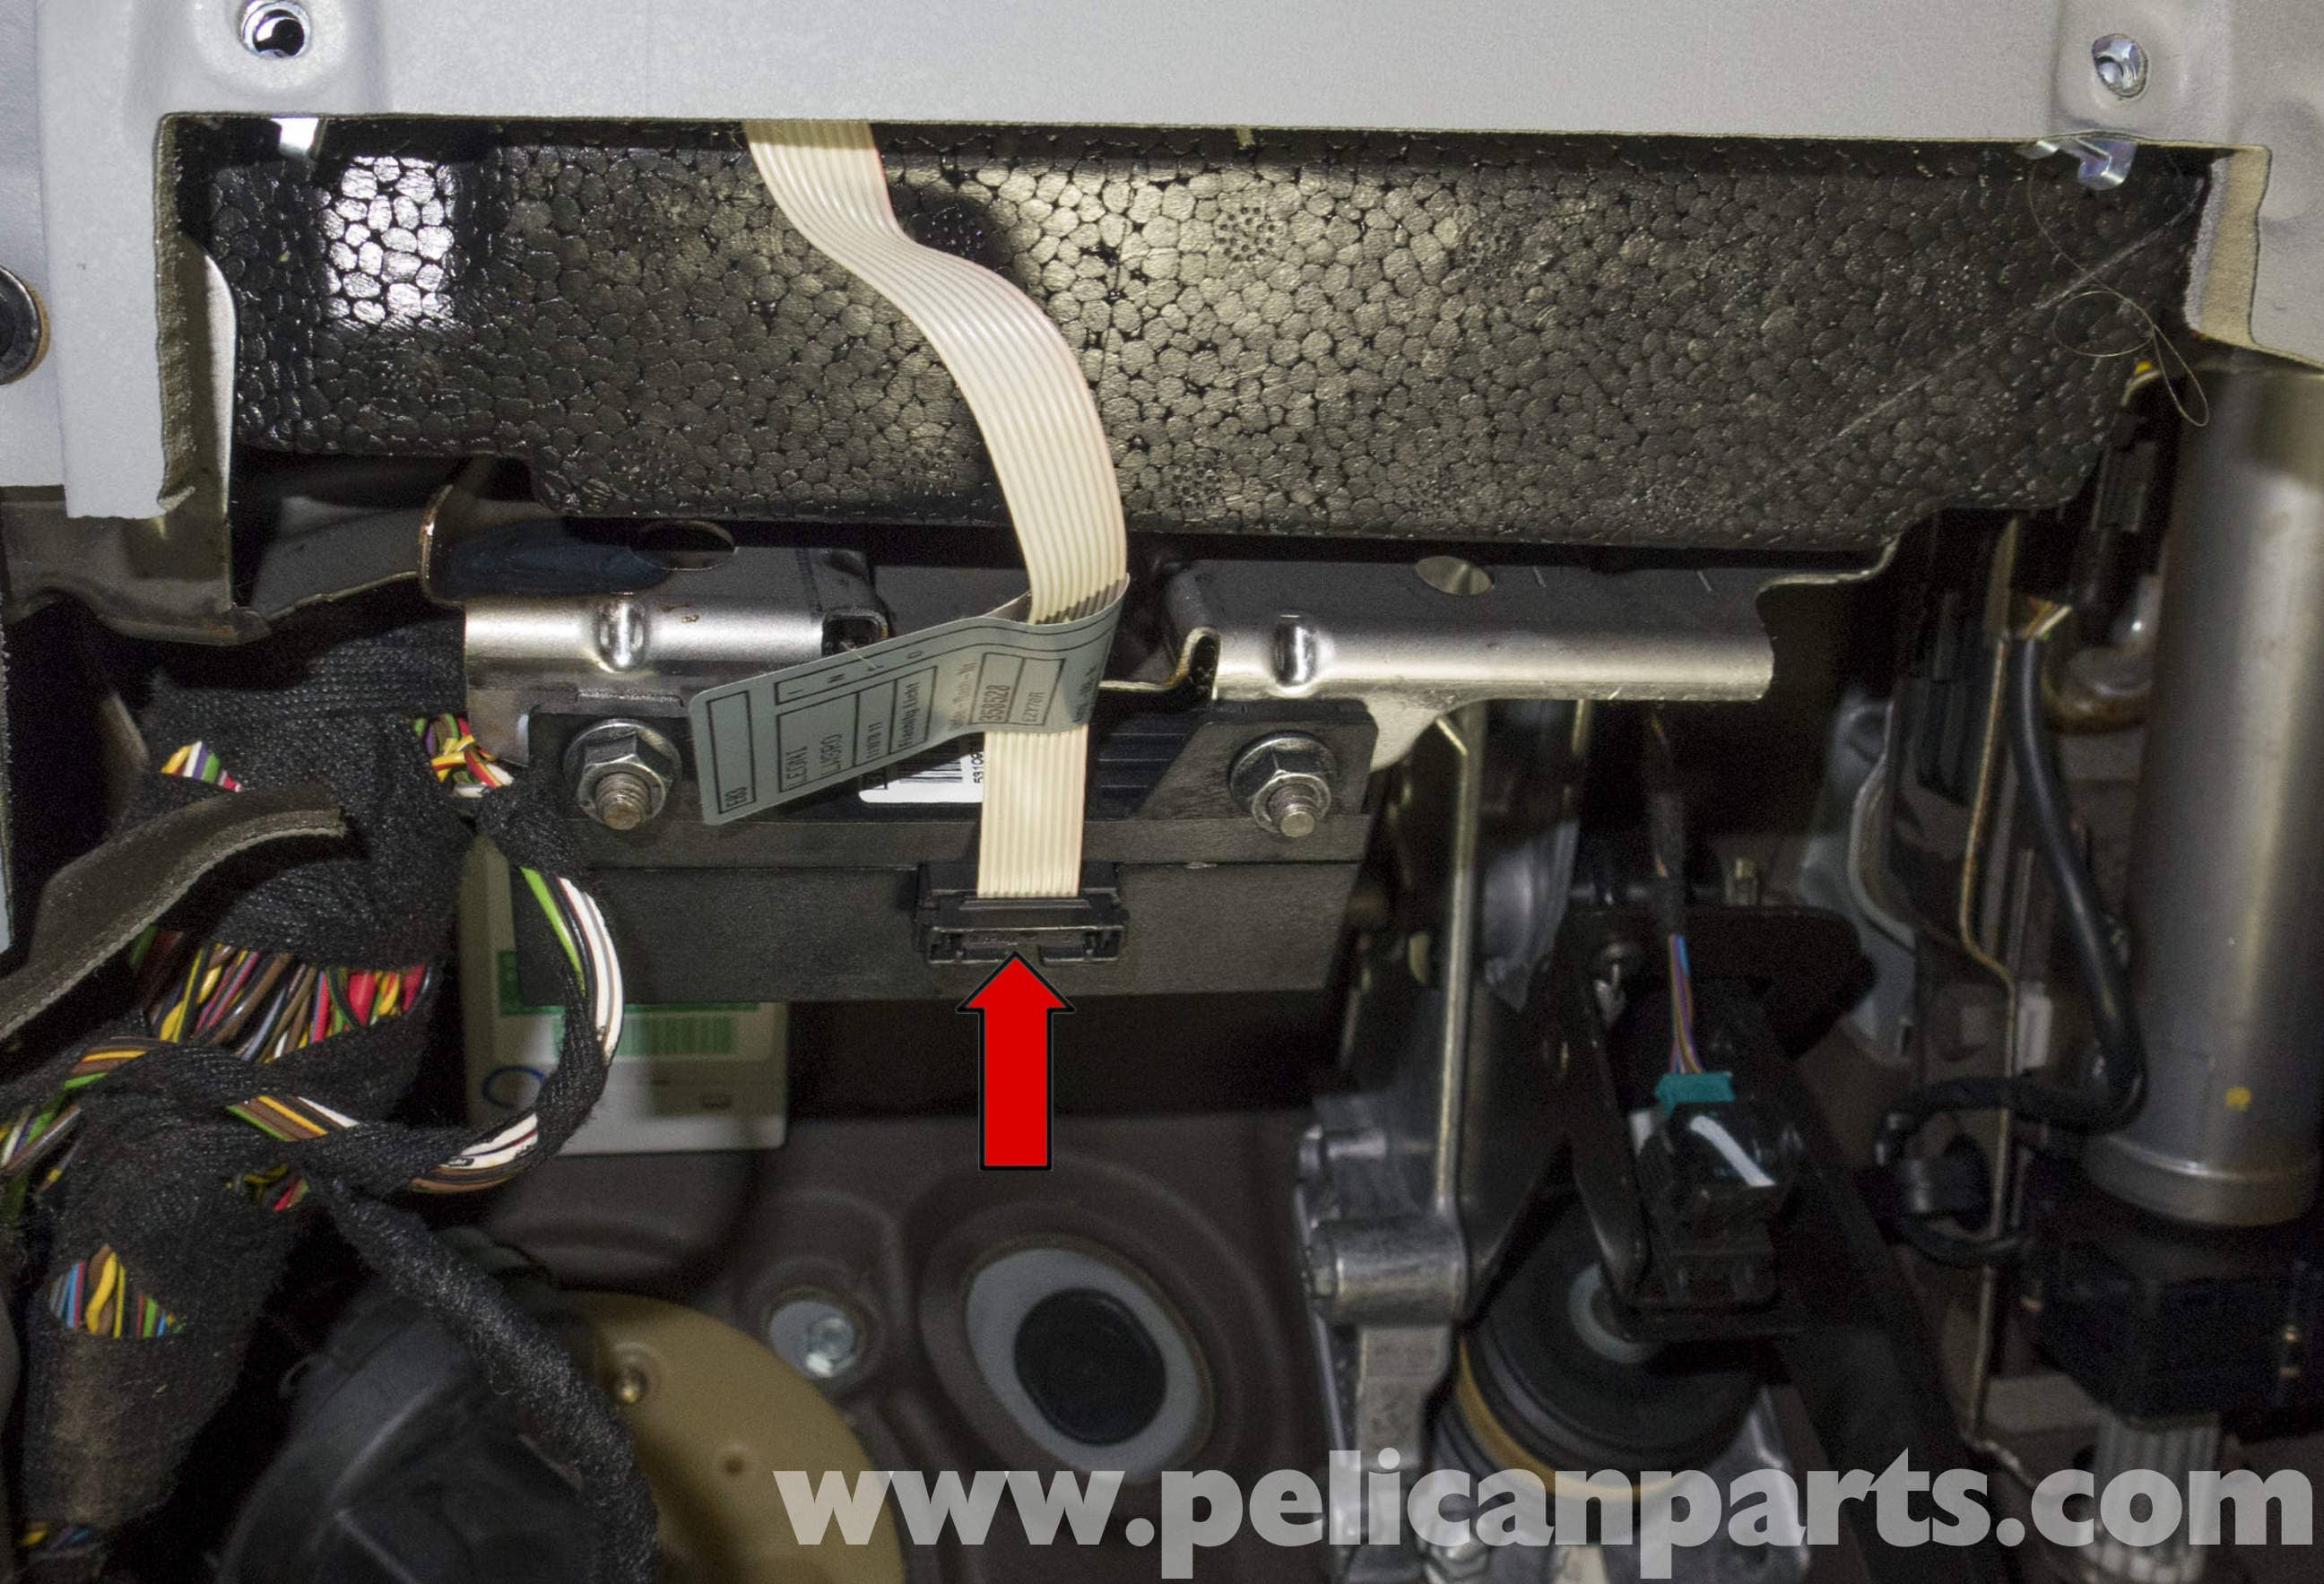 Pelican Parts Technical Article - BMW-X3 - Light Module Replacement